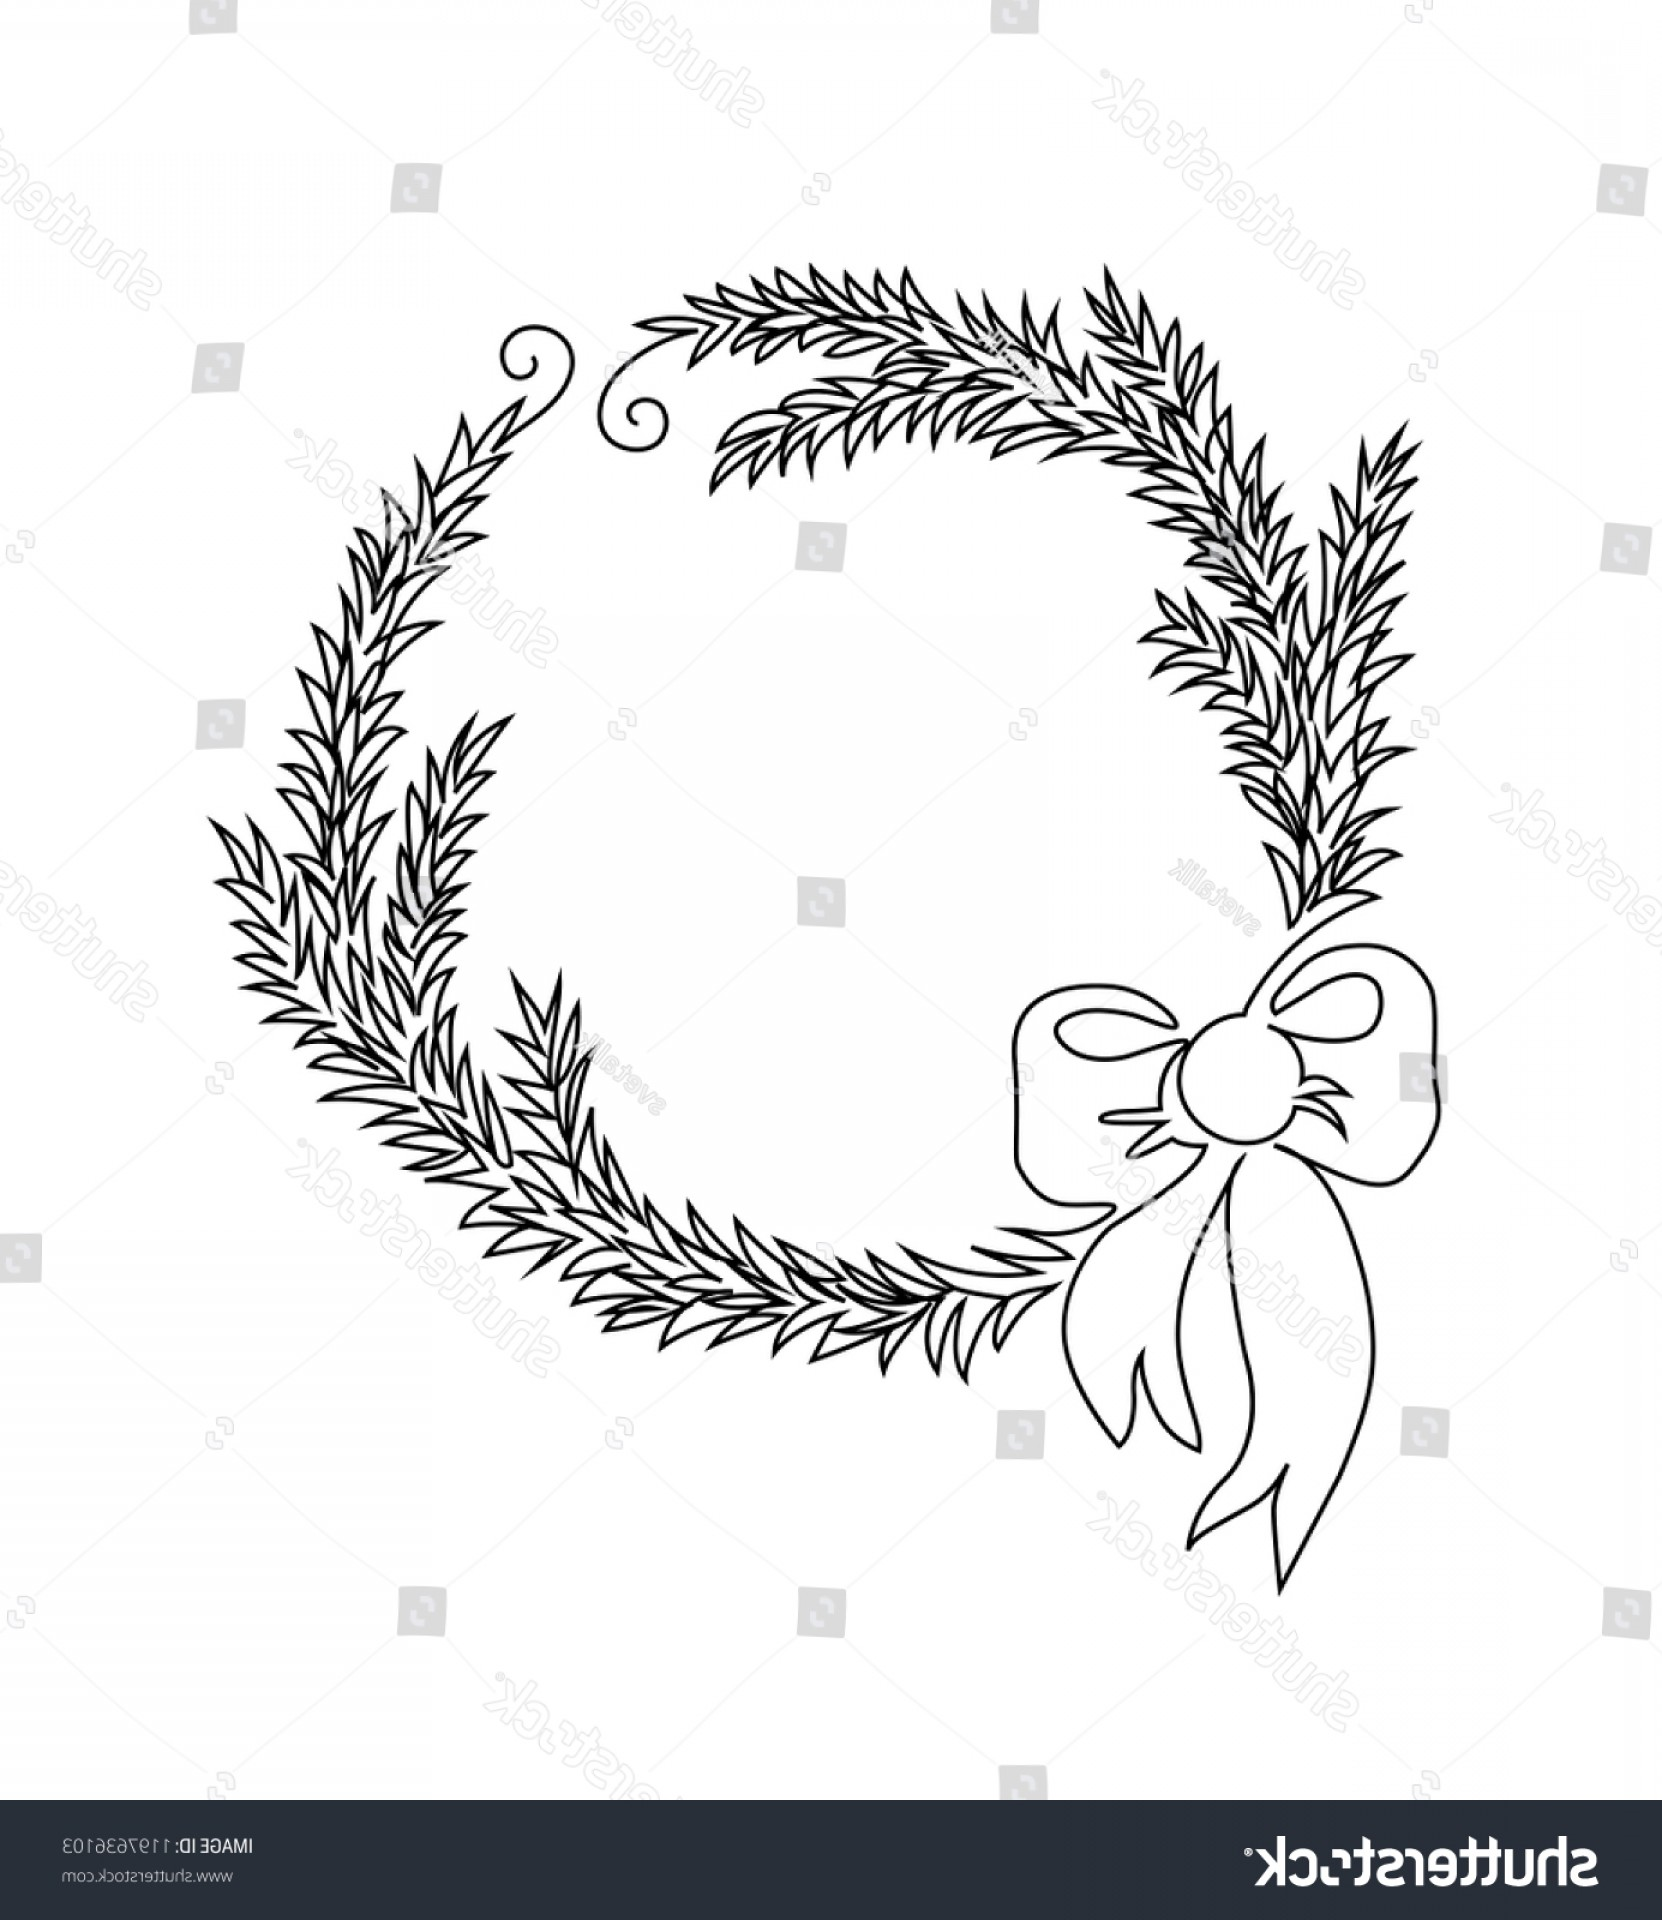 Continuous Tree Branch Vector Image: One Line Christmas Wreath Fir Tree